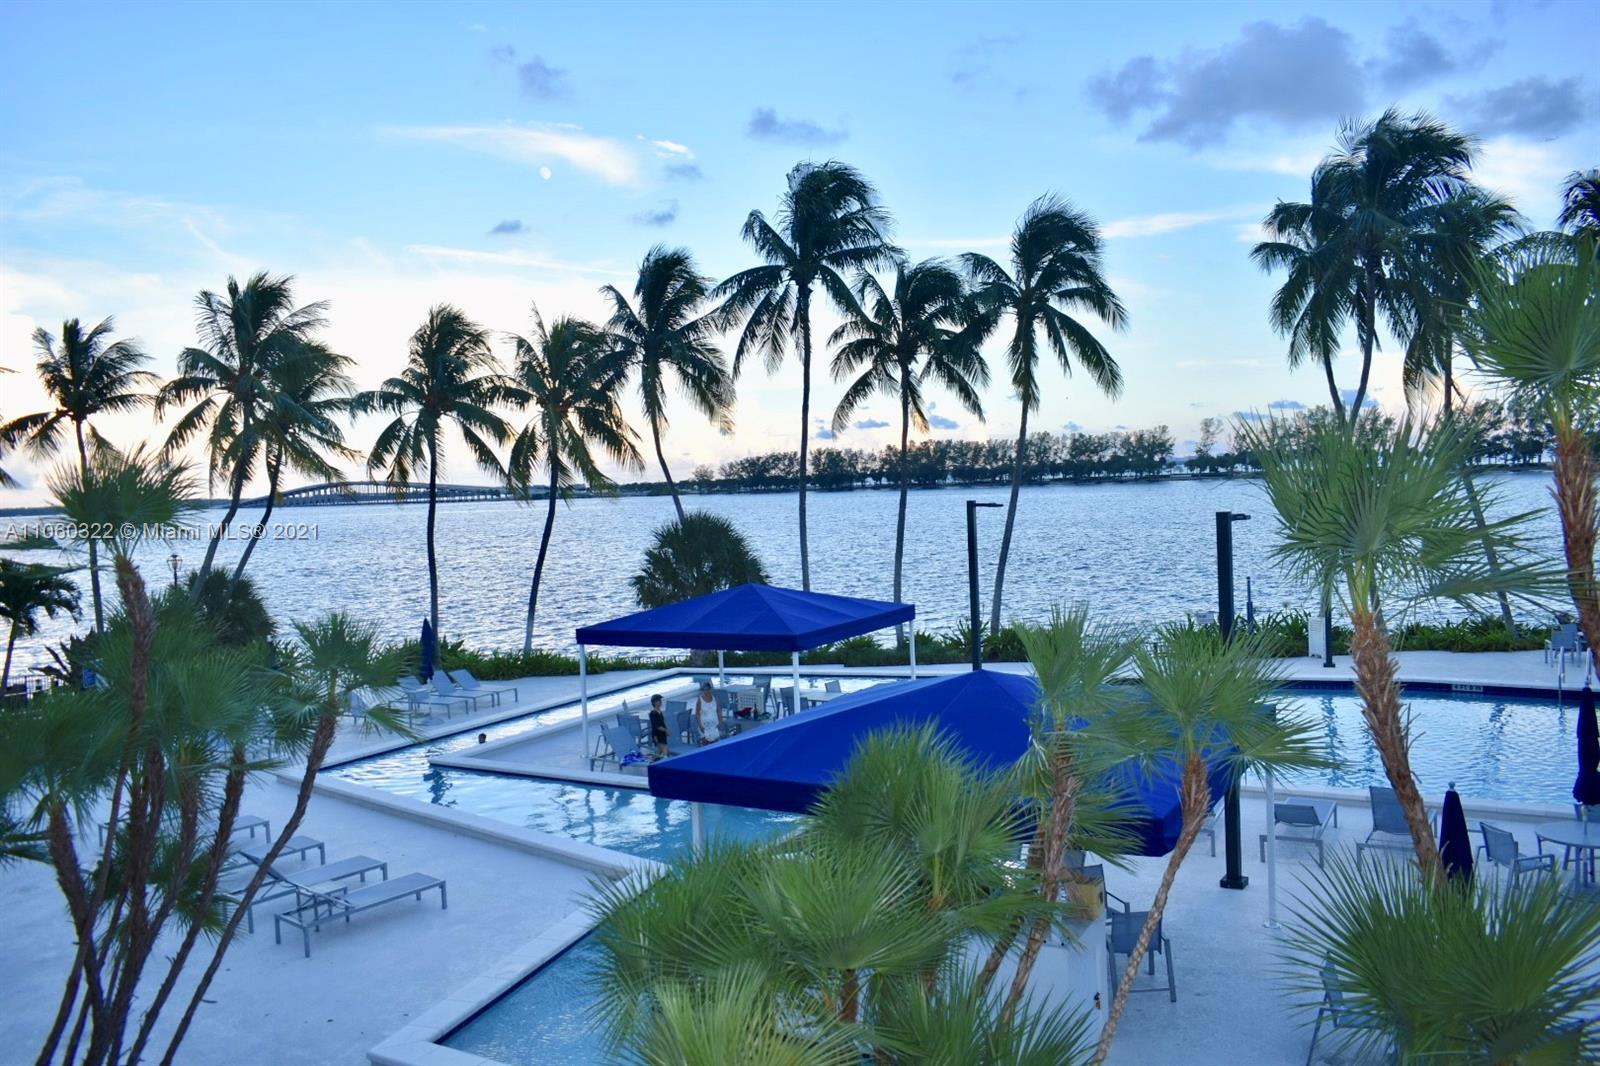 Location...location...location... Prestigious Brickell Bay Club; 2-2 unit. split design. washer and dryer inside the unit. Great resort style amenities: gym, tennis courts, banquet hall, jacuzzi, kids room, grocery store, beauty salon, valet parking, pool by the bay/ gated, family oriented building. close to restaurants, beaches, shopping center. easy access to I95. great opportunity to own on iconic Brickell Avenue. Safe and well established building.